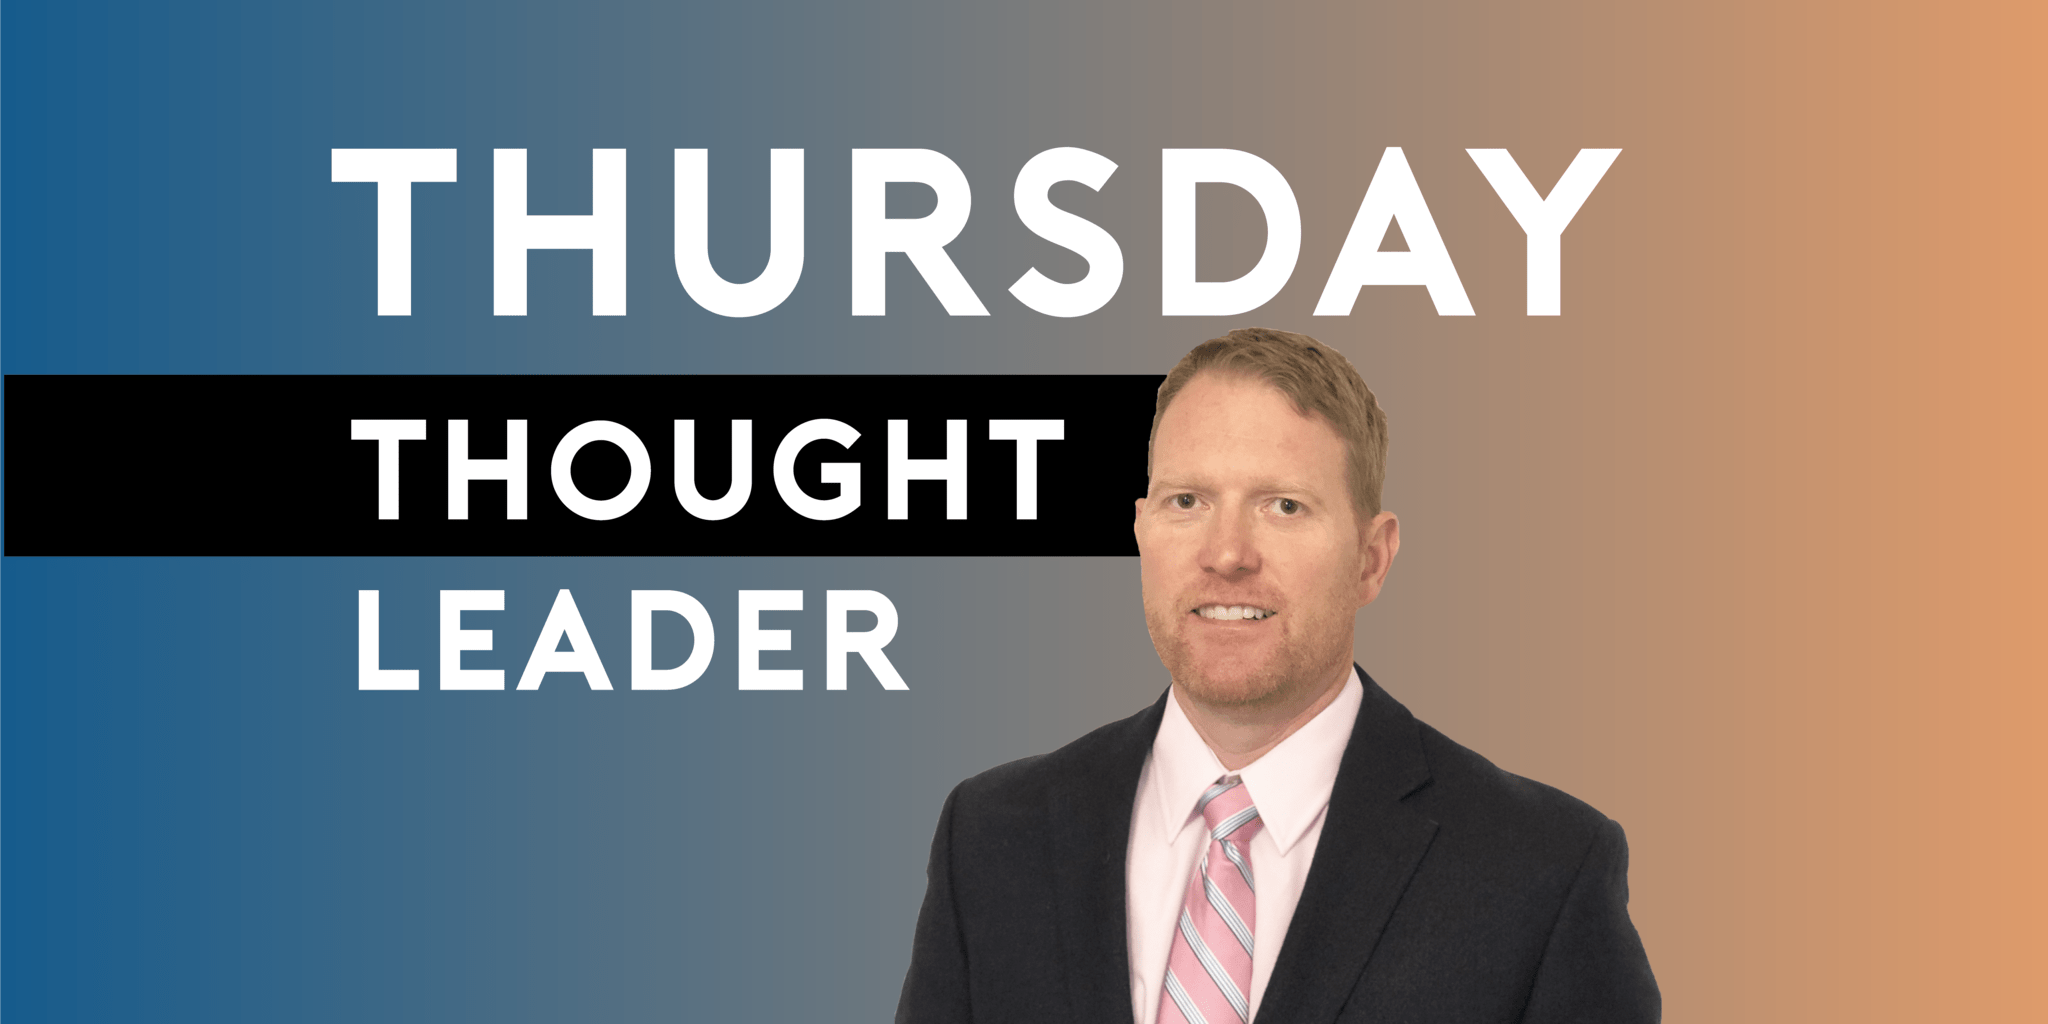 Jason Kolb of Smart Data Solutions is LegalNet Inc's Thursday Thought Leader